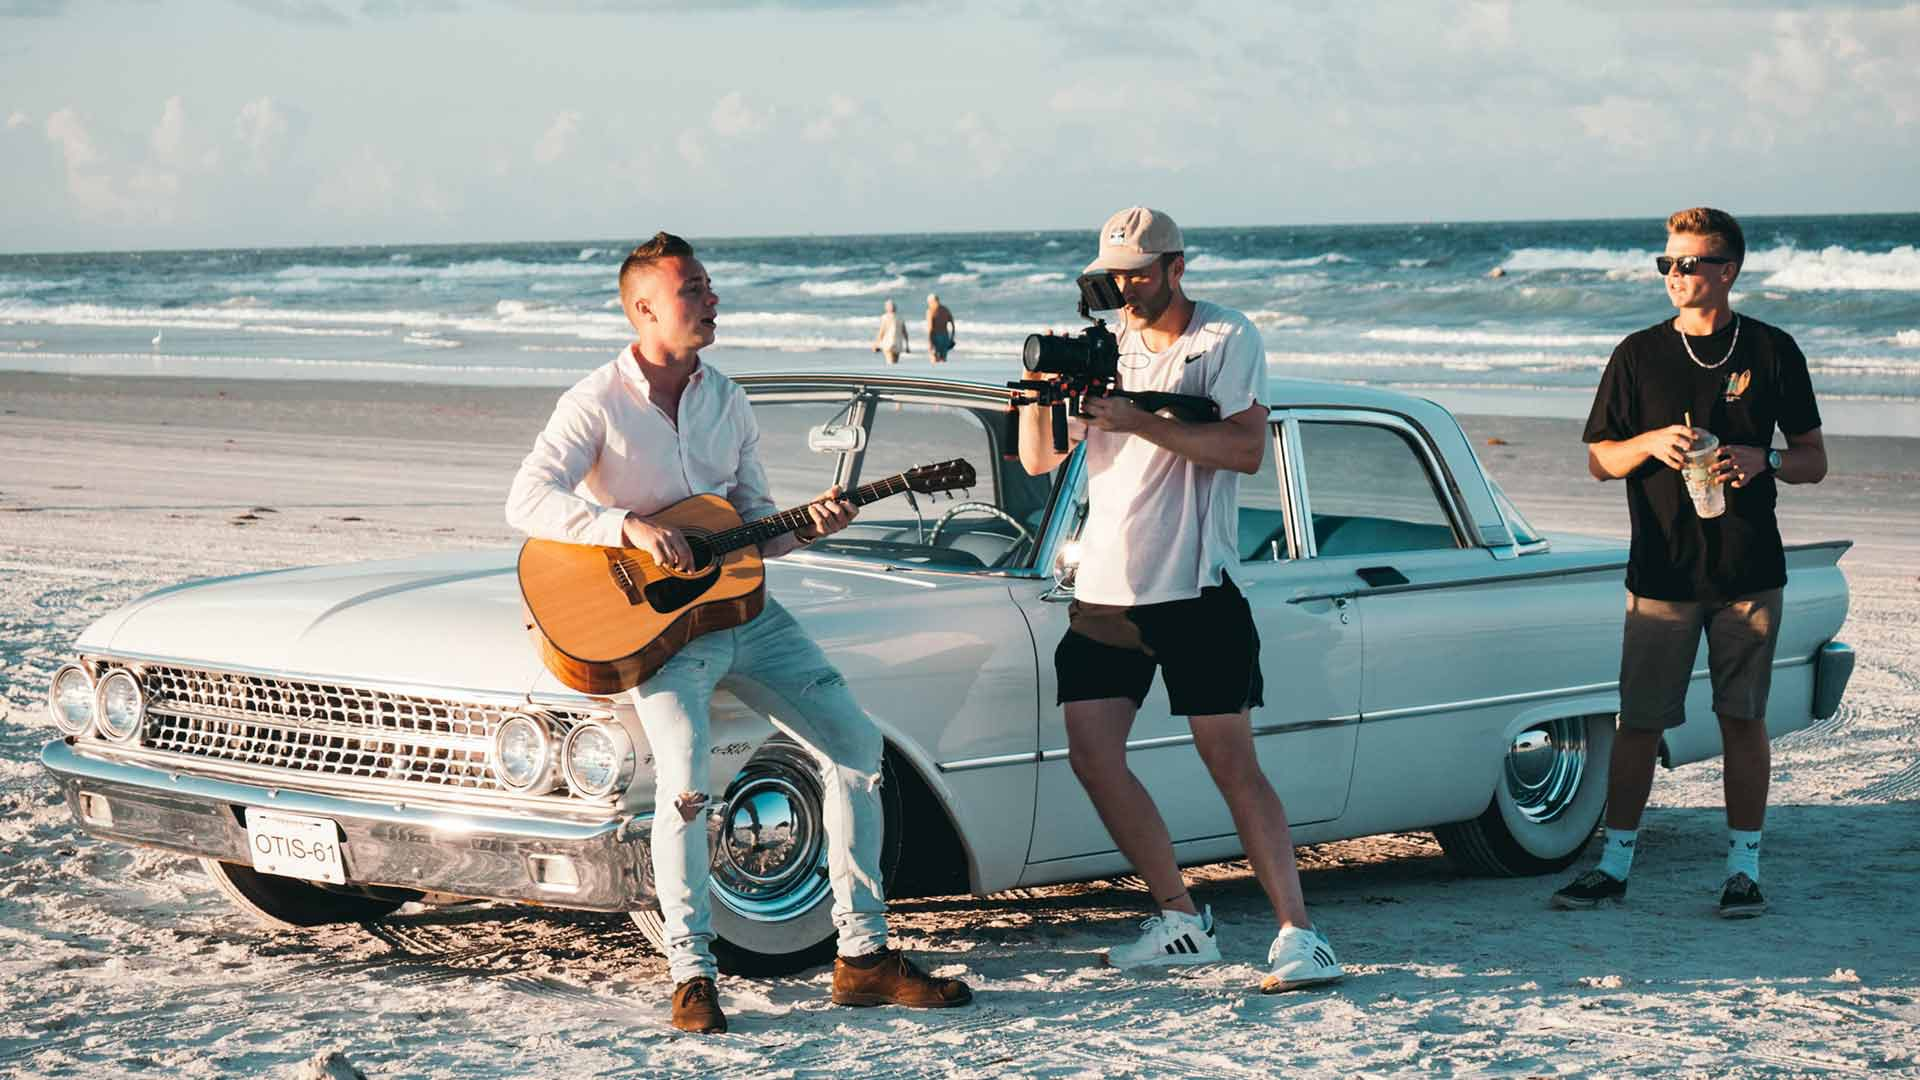 Musician playing guitar on a vintage Cadillac at the beach with filmmaker shooting footage for a music video -music video and short film ideas